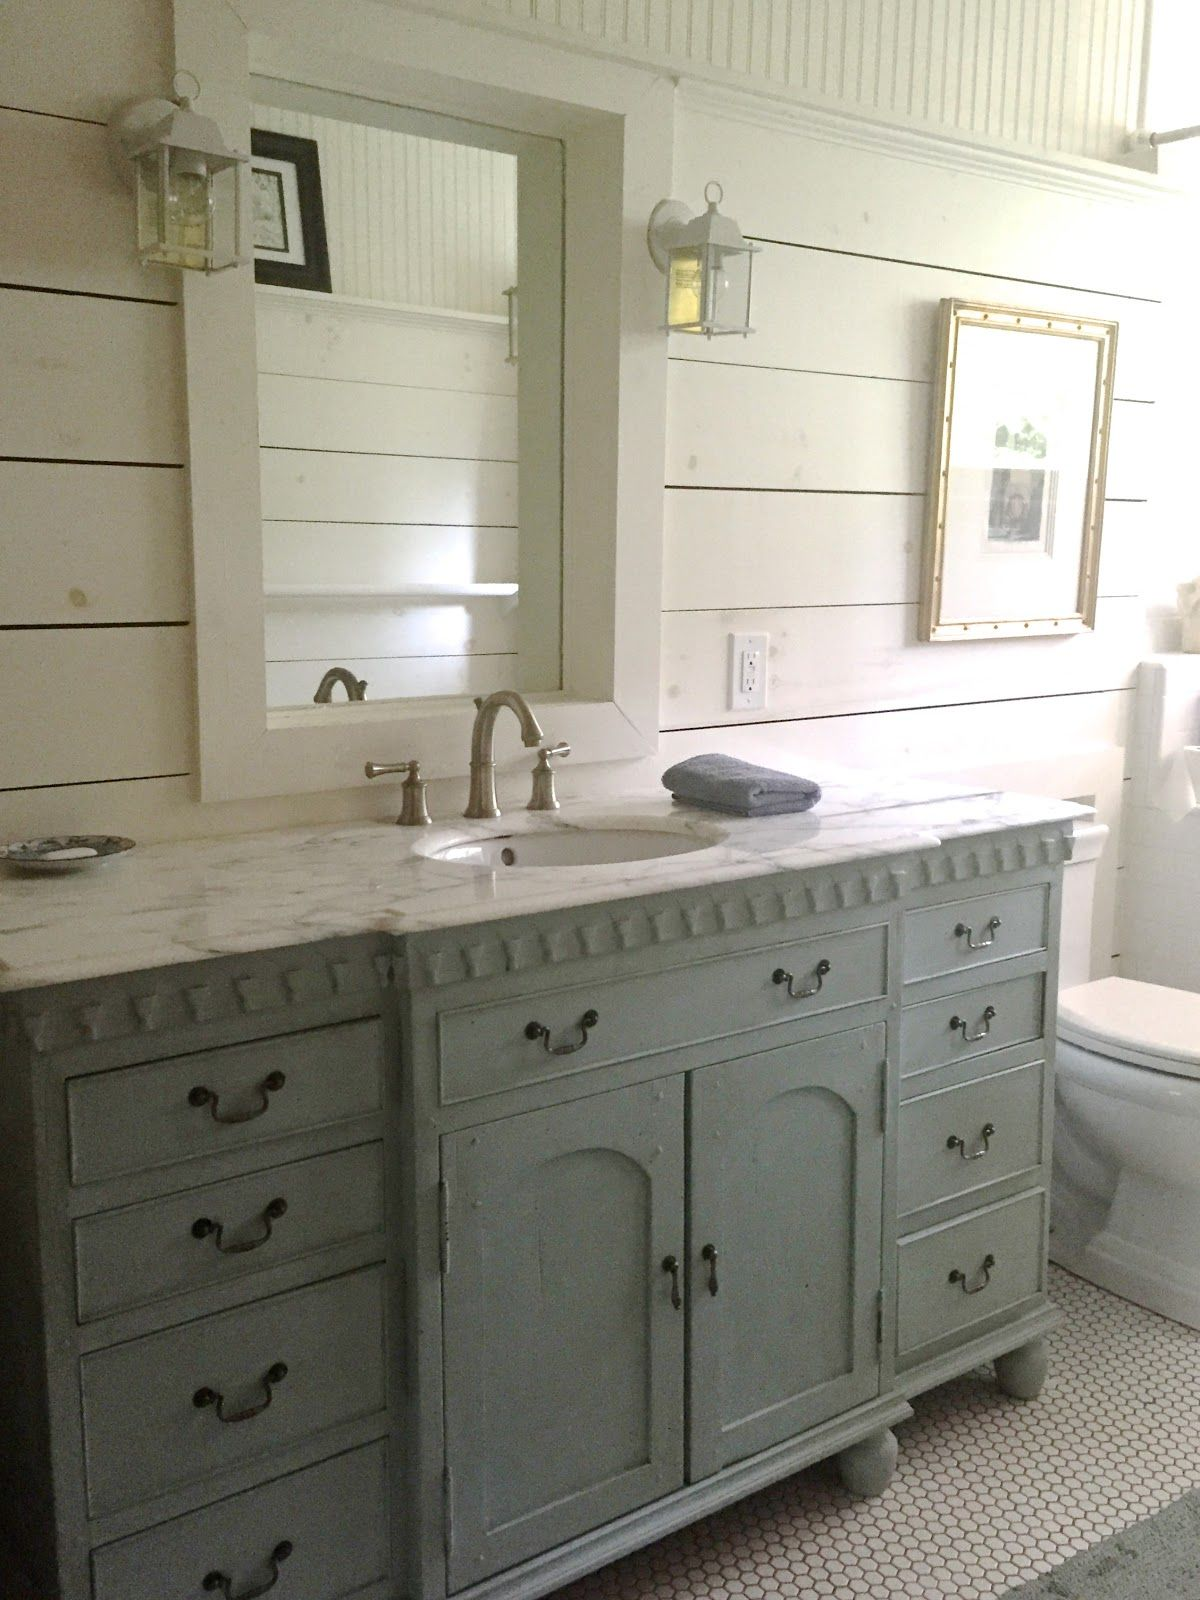 Design Indulgence Bath Vanities  Bathrooms  Pinterest  Bath Classy Design A Bathroom Vanity Review